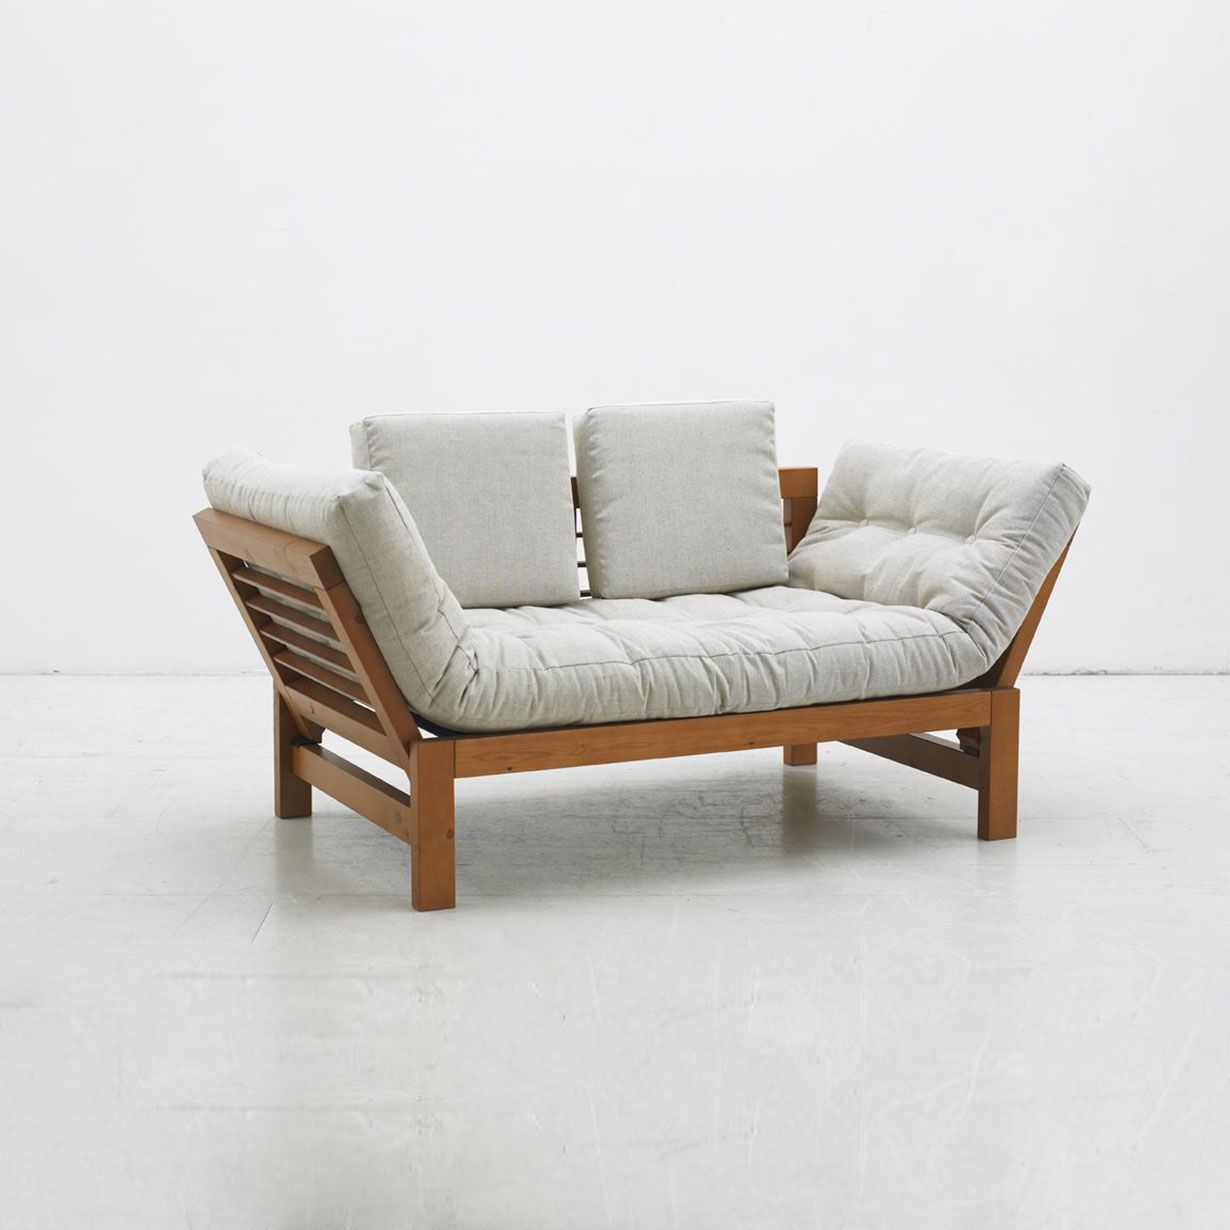 Karup Jazz 2 Seater Sofa Is A Simple Clear Two